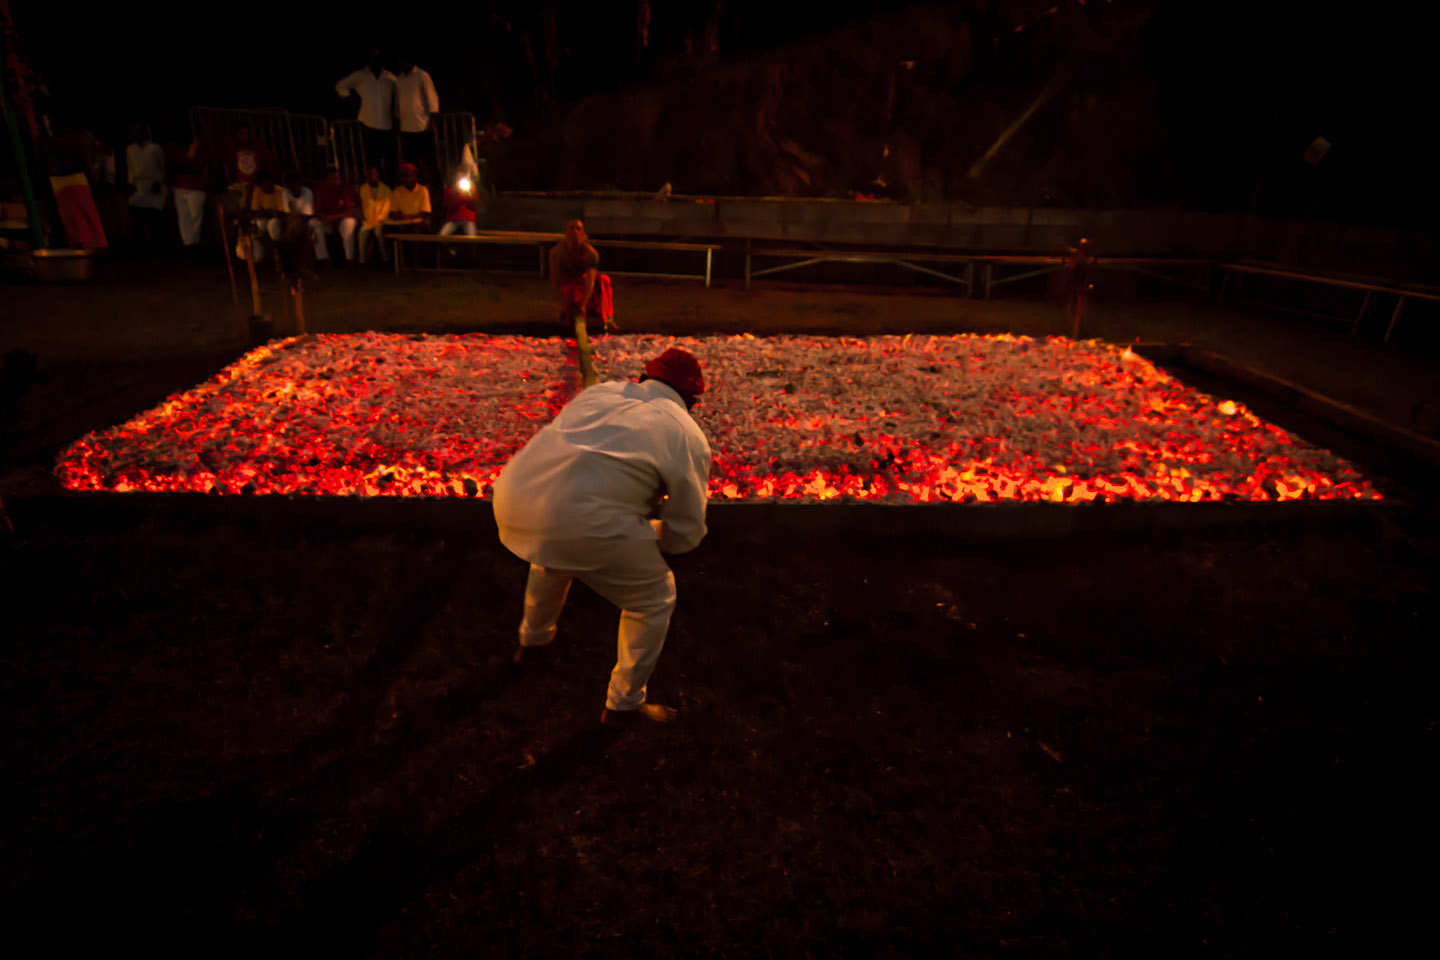 Preparing the red-hot coals for Marche sur le feu firewalk La Reunion